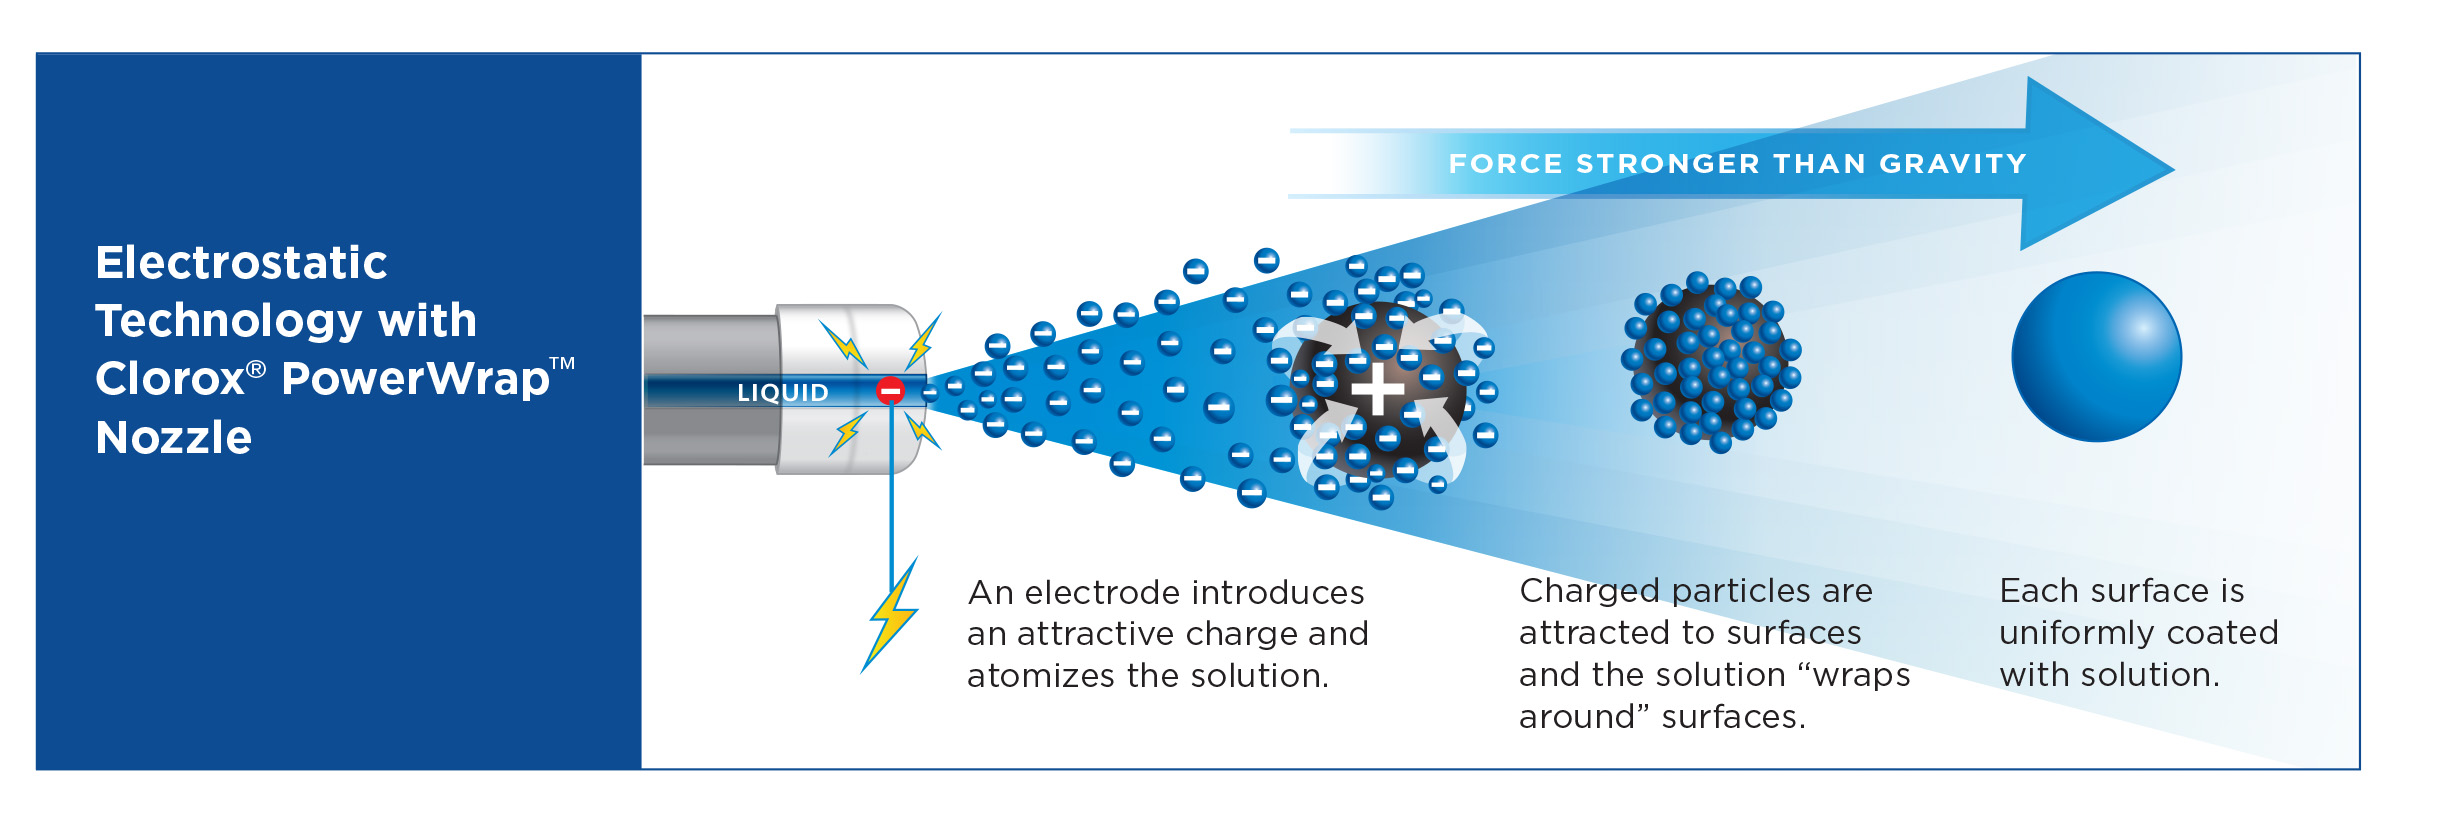 Electrostatic disinfectant sprayer how it works chart